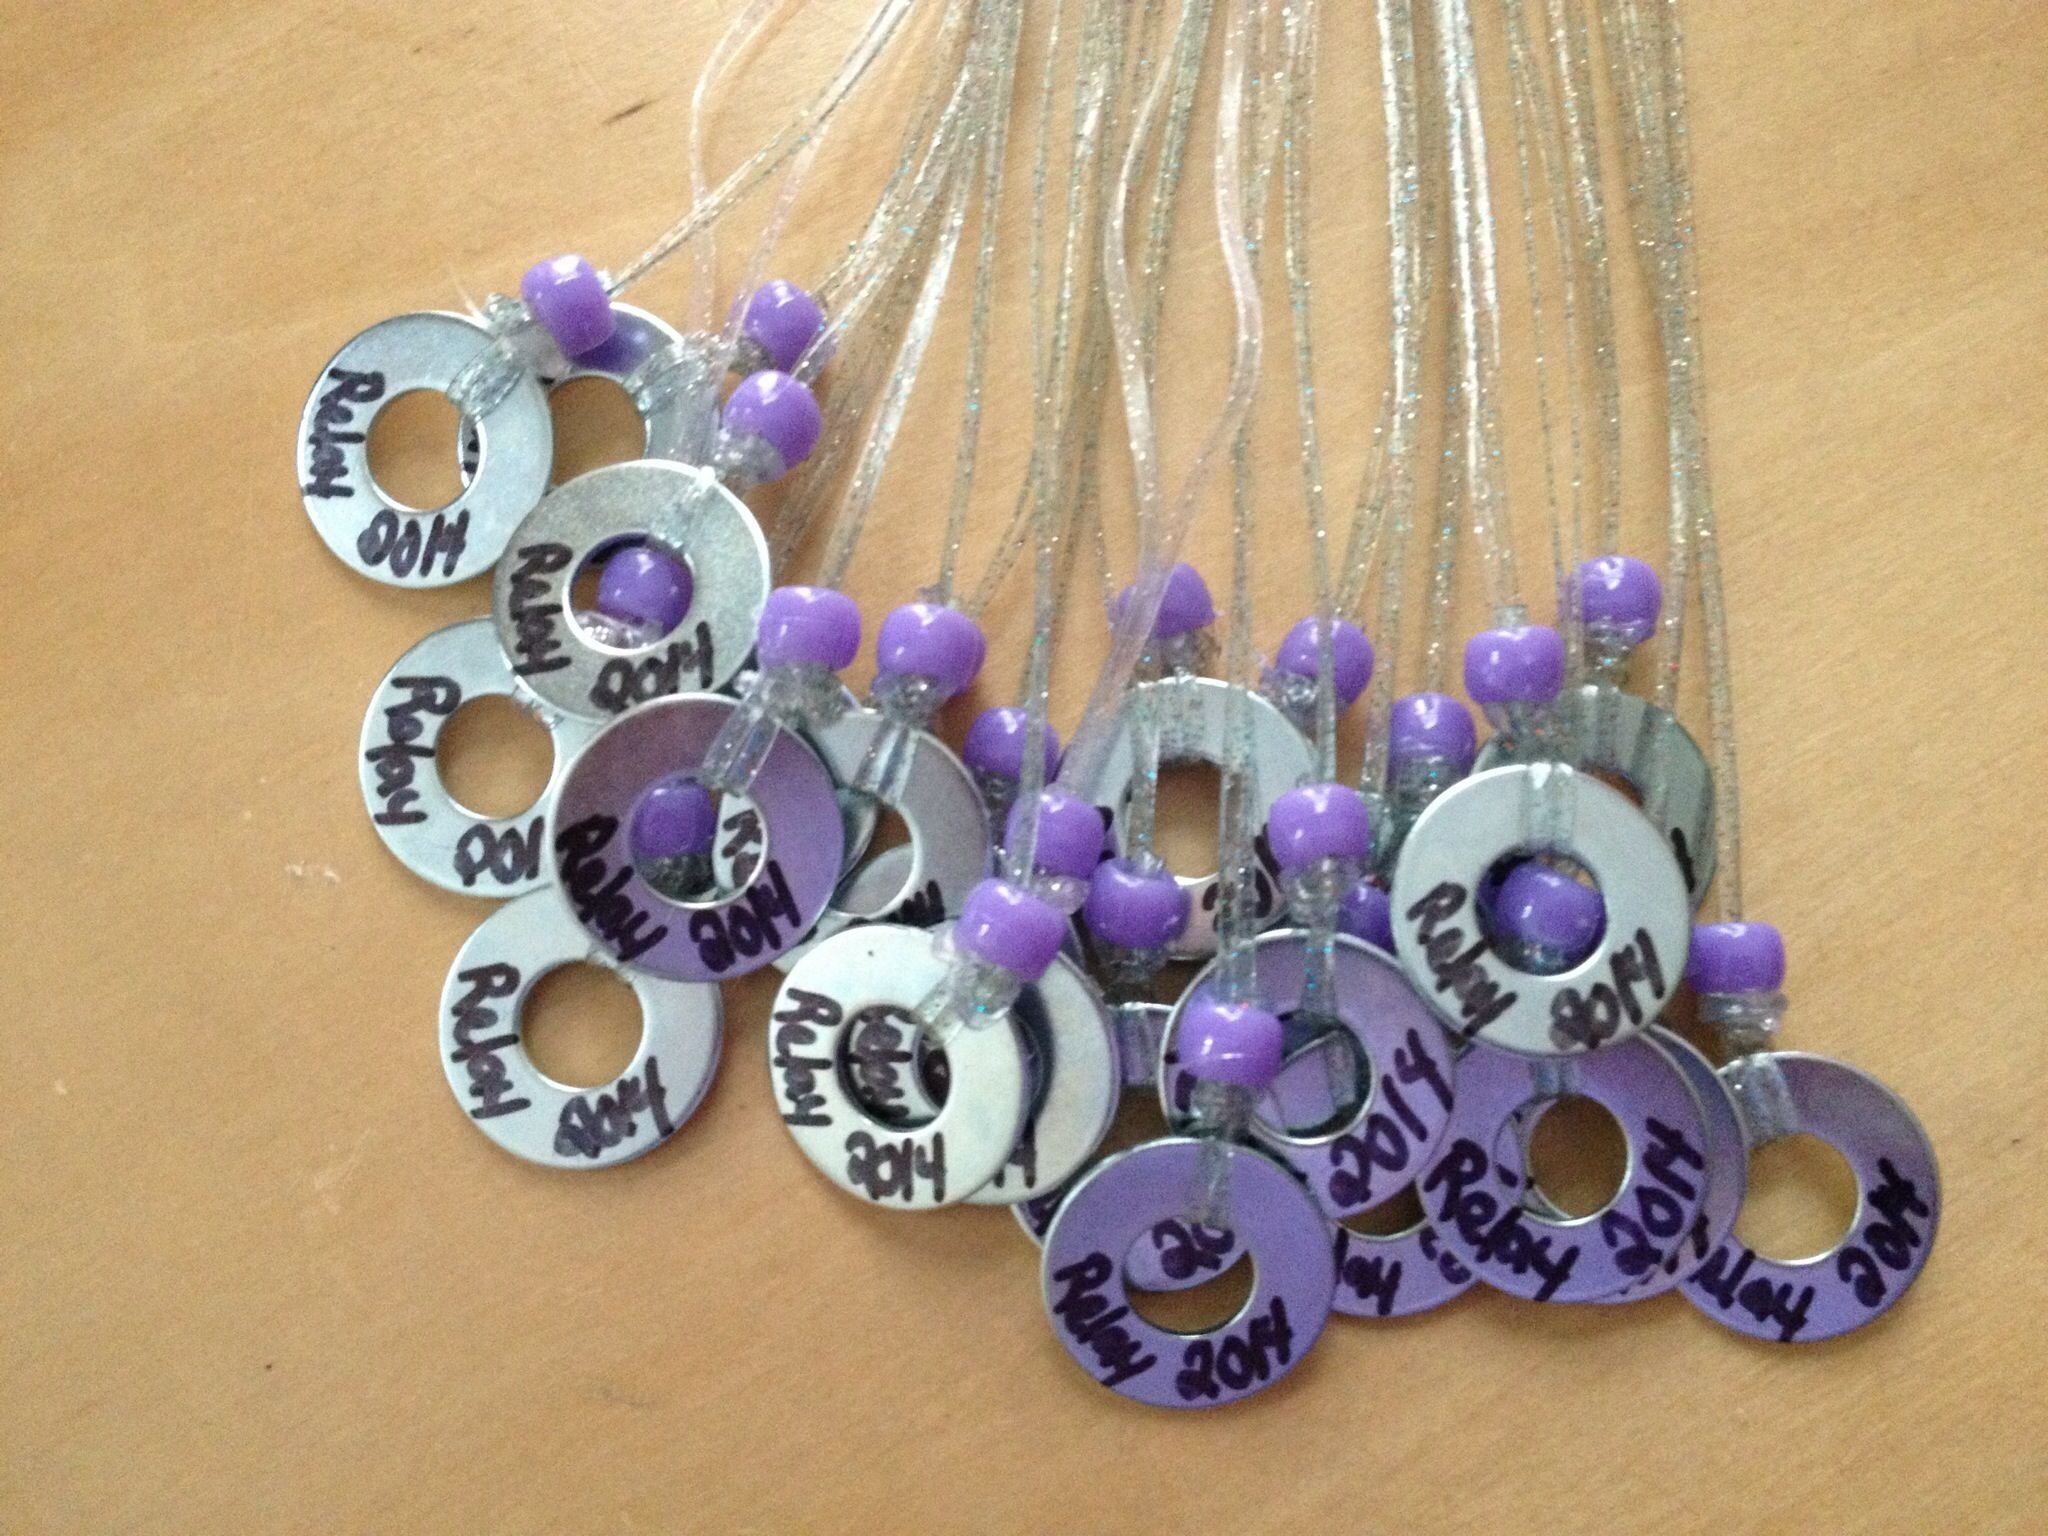 10 Spectacular Relay For Life Lap Ideas relay for life lap beads relay ideas pinterest beads 2020